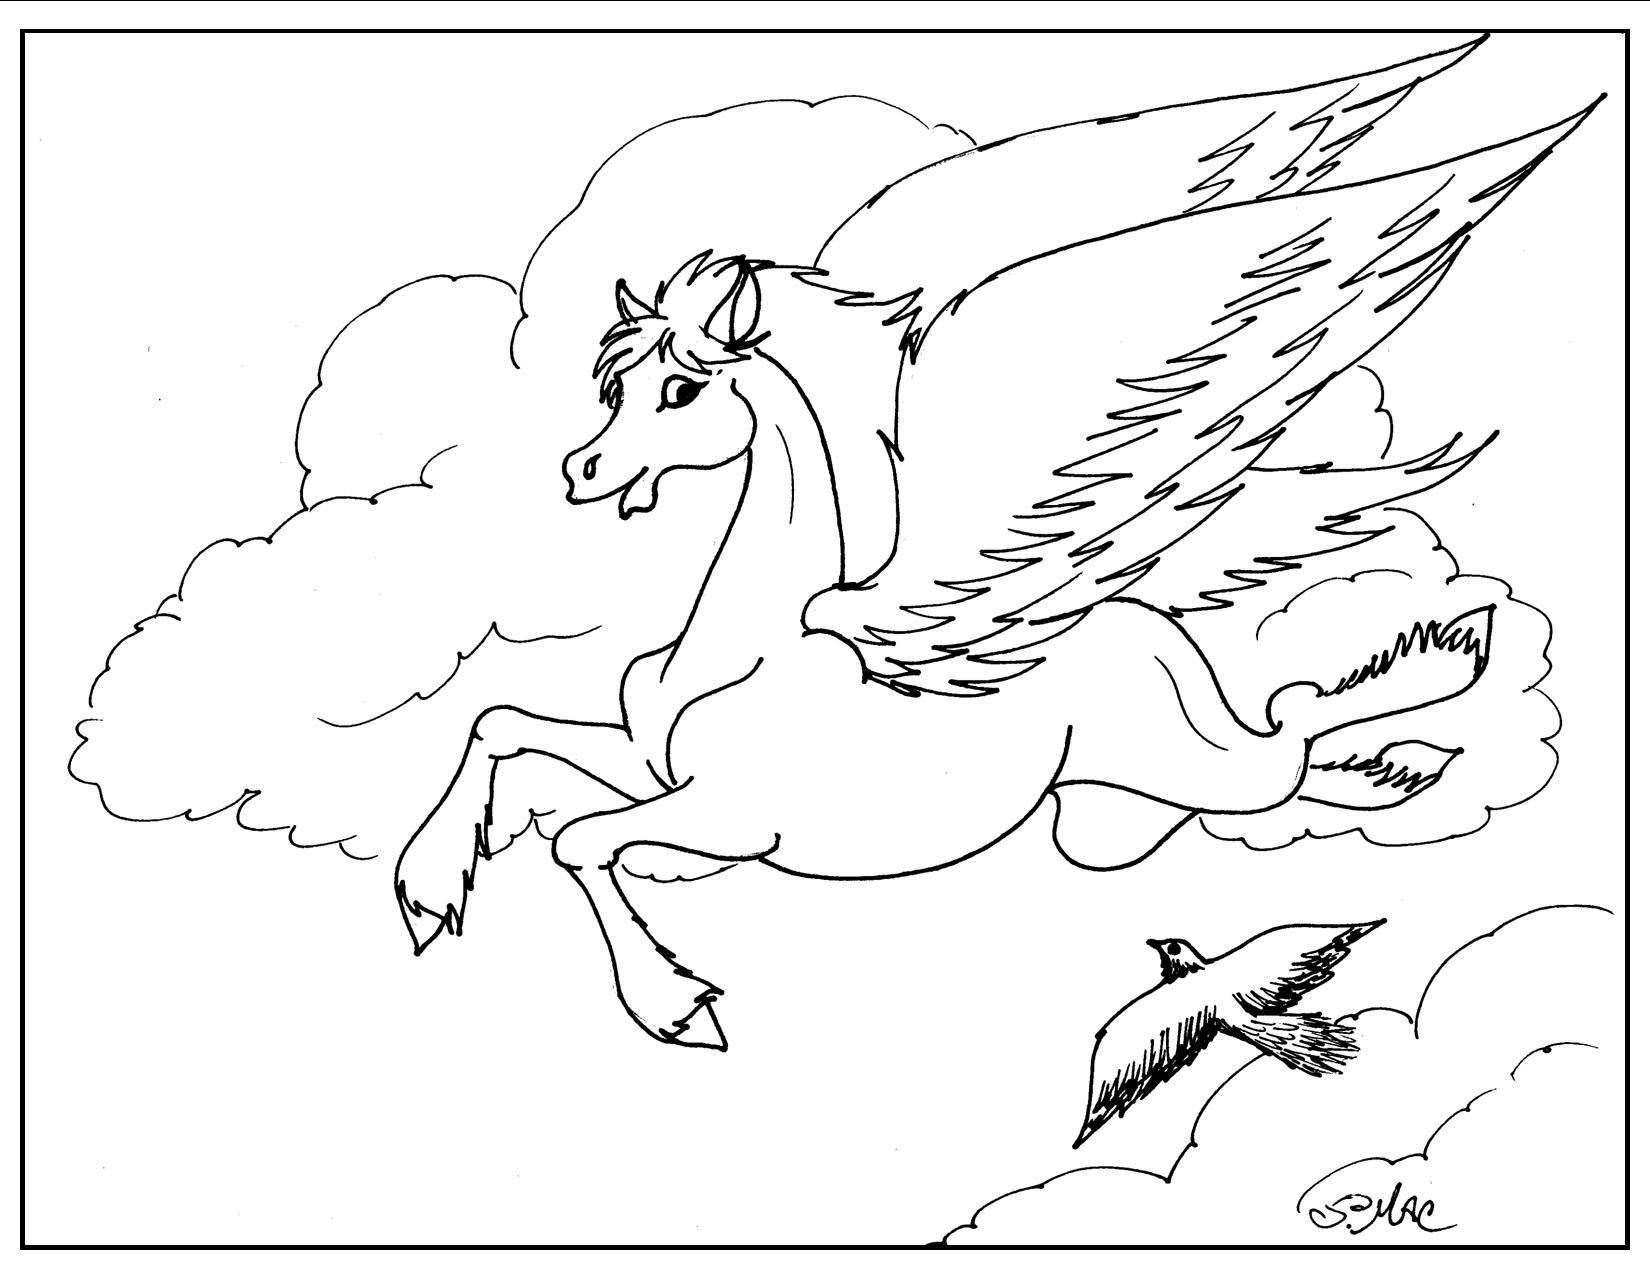 Pegasus Coloring Page Bird coloring pages, Coloring